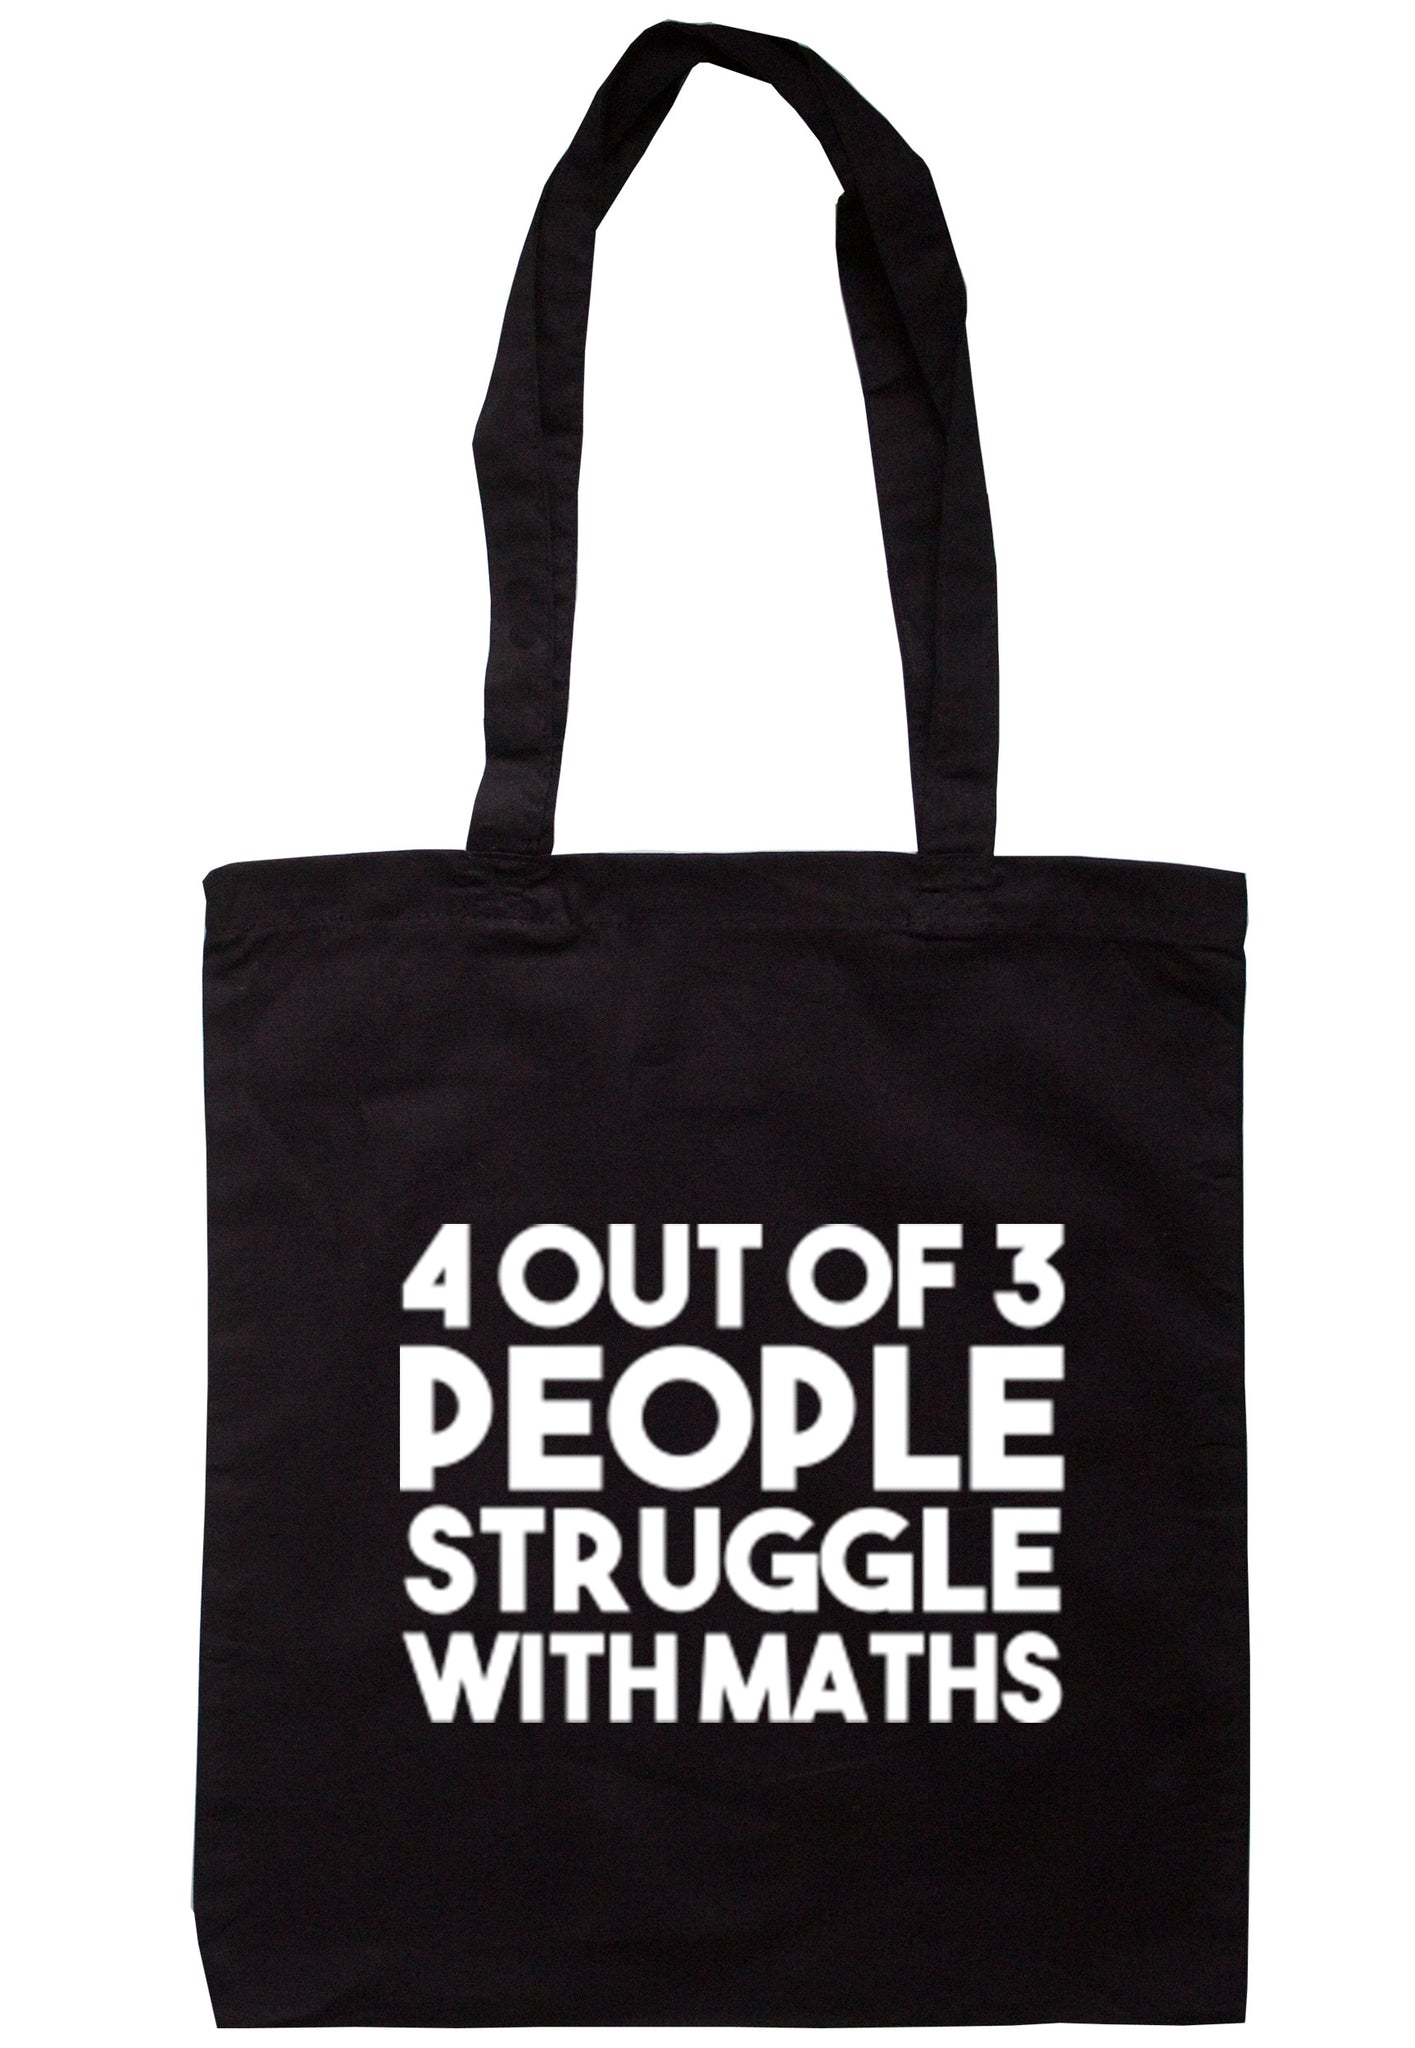 4 Out Of 3 People Struggle With Maths Tote Bag TB0239